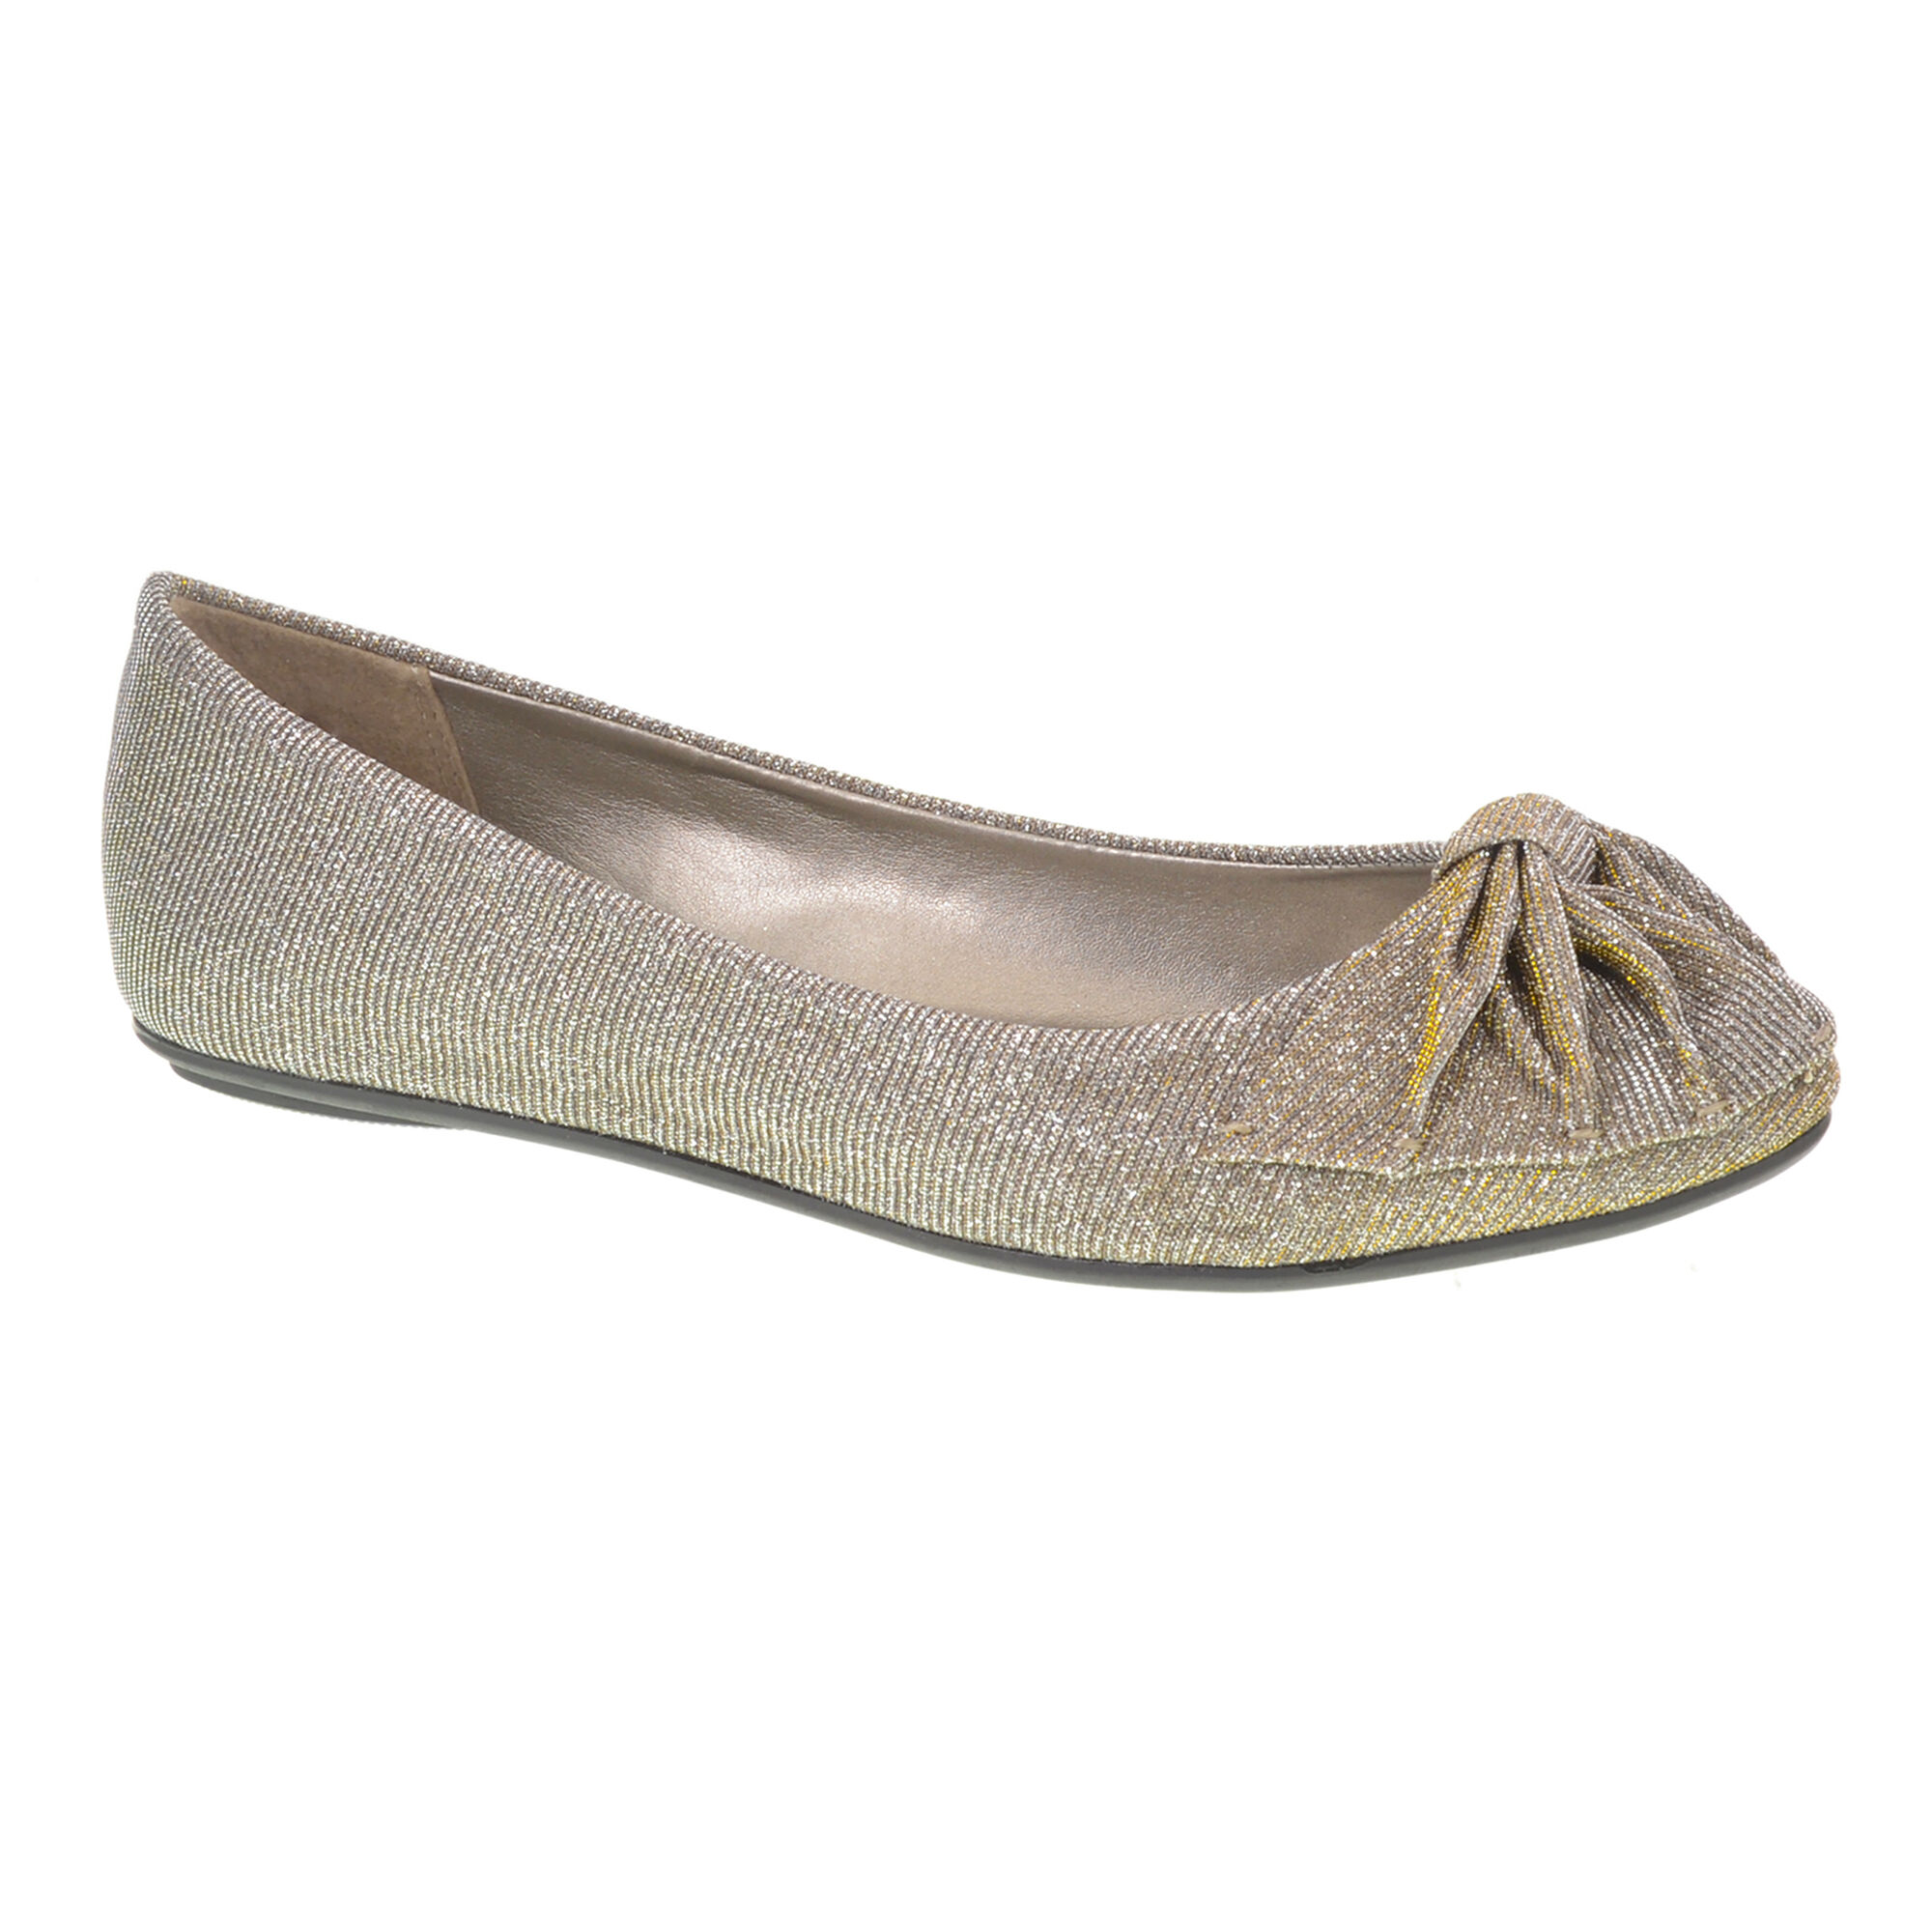 5bc518425f19 CL by Laundry Huge Hit Bow Detailed Flats